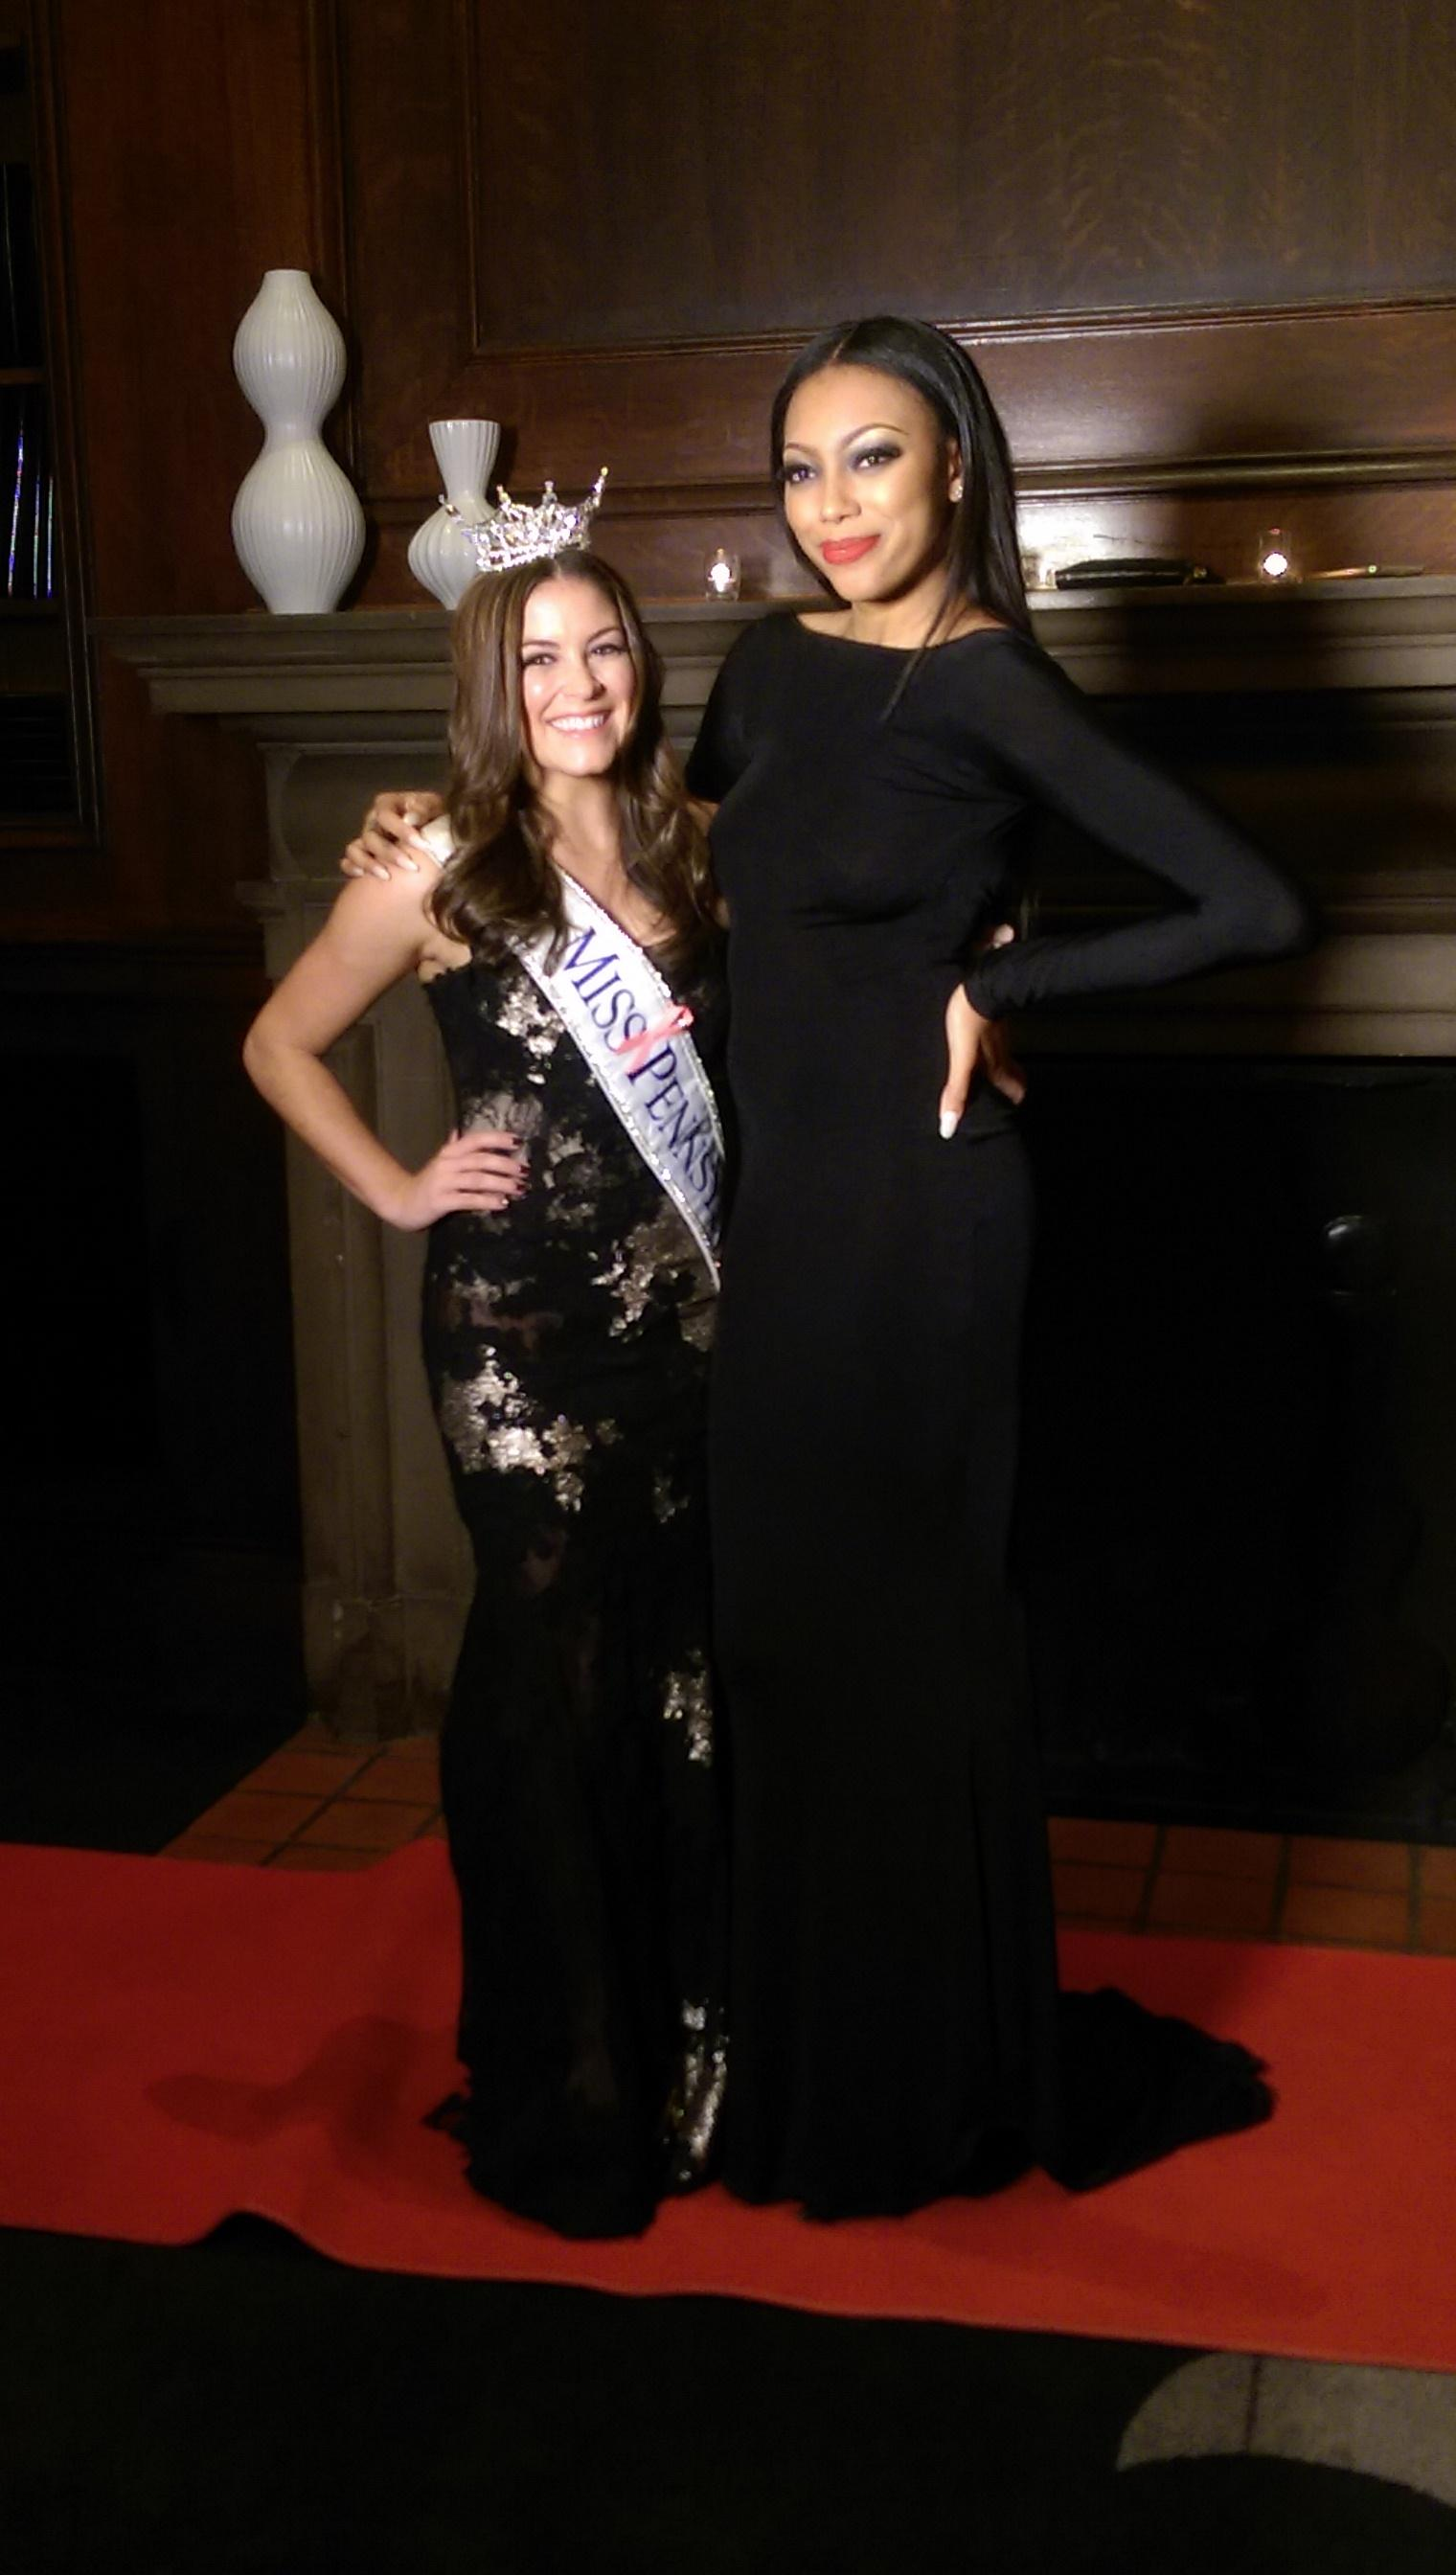 Miss PA, Ashley Schmider and America's next top Model winner, Bianca Golden